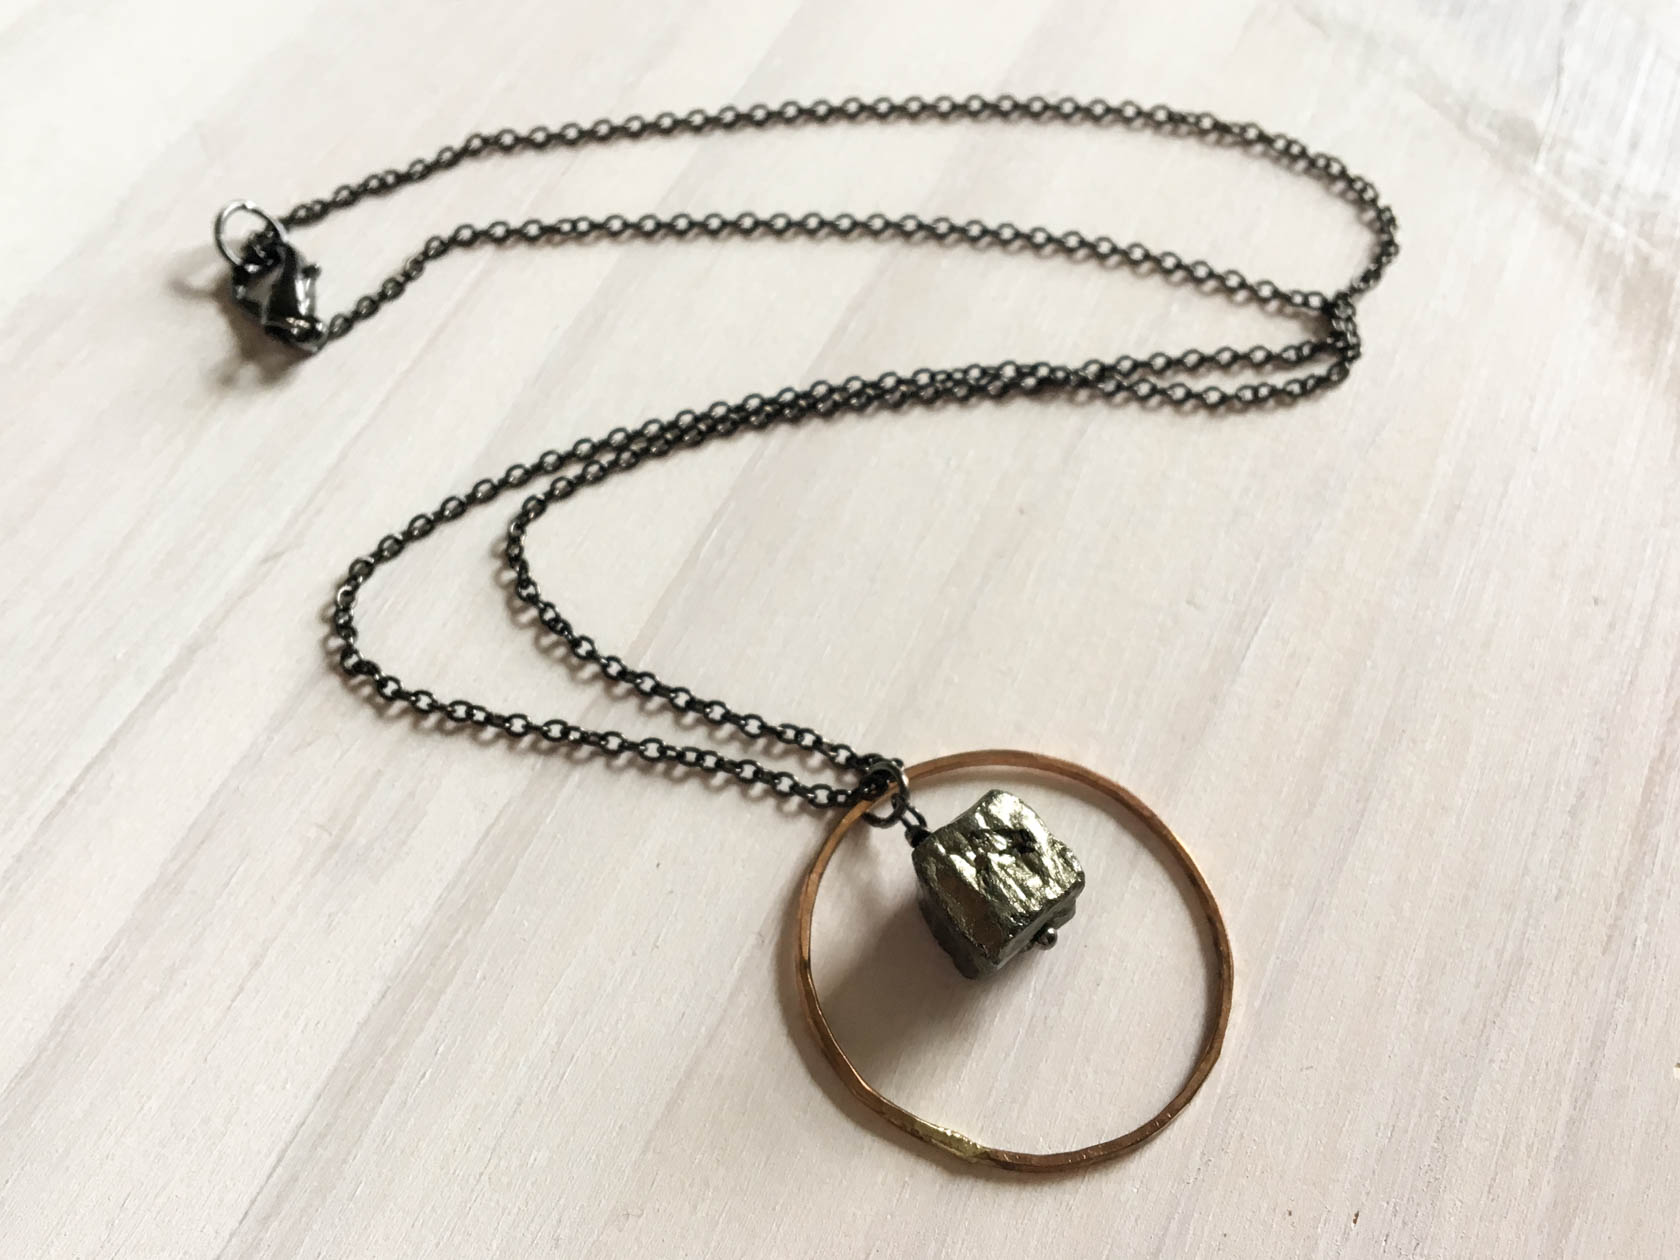 ☽ PYRITE ☾ - ☽ PYRITE ☾ offers protection against negativity and promotes leadership qualities. A great stone to wear when you need confidence and to be a strong leader. It stimulates the intellect and aids the memory.